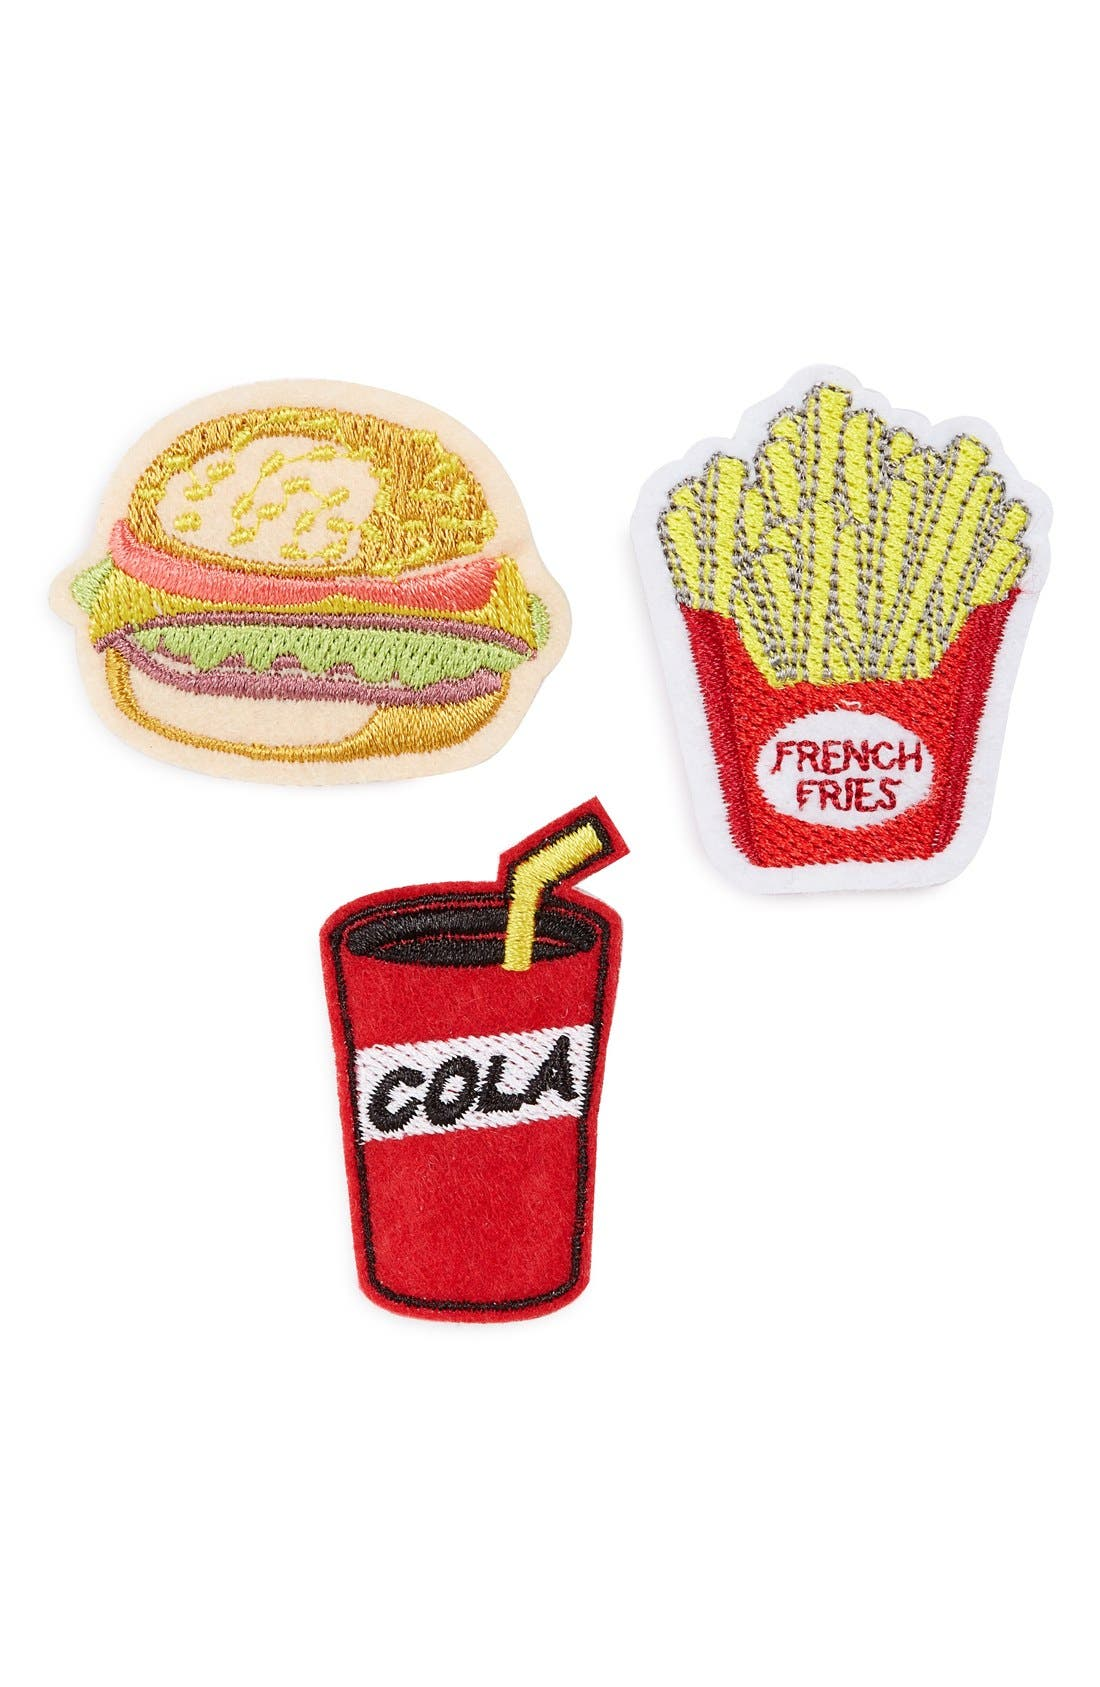 Main Image - Topshop 'Fast Food' Embroidered Brooches (Set of 3)